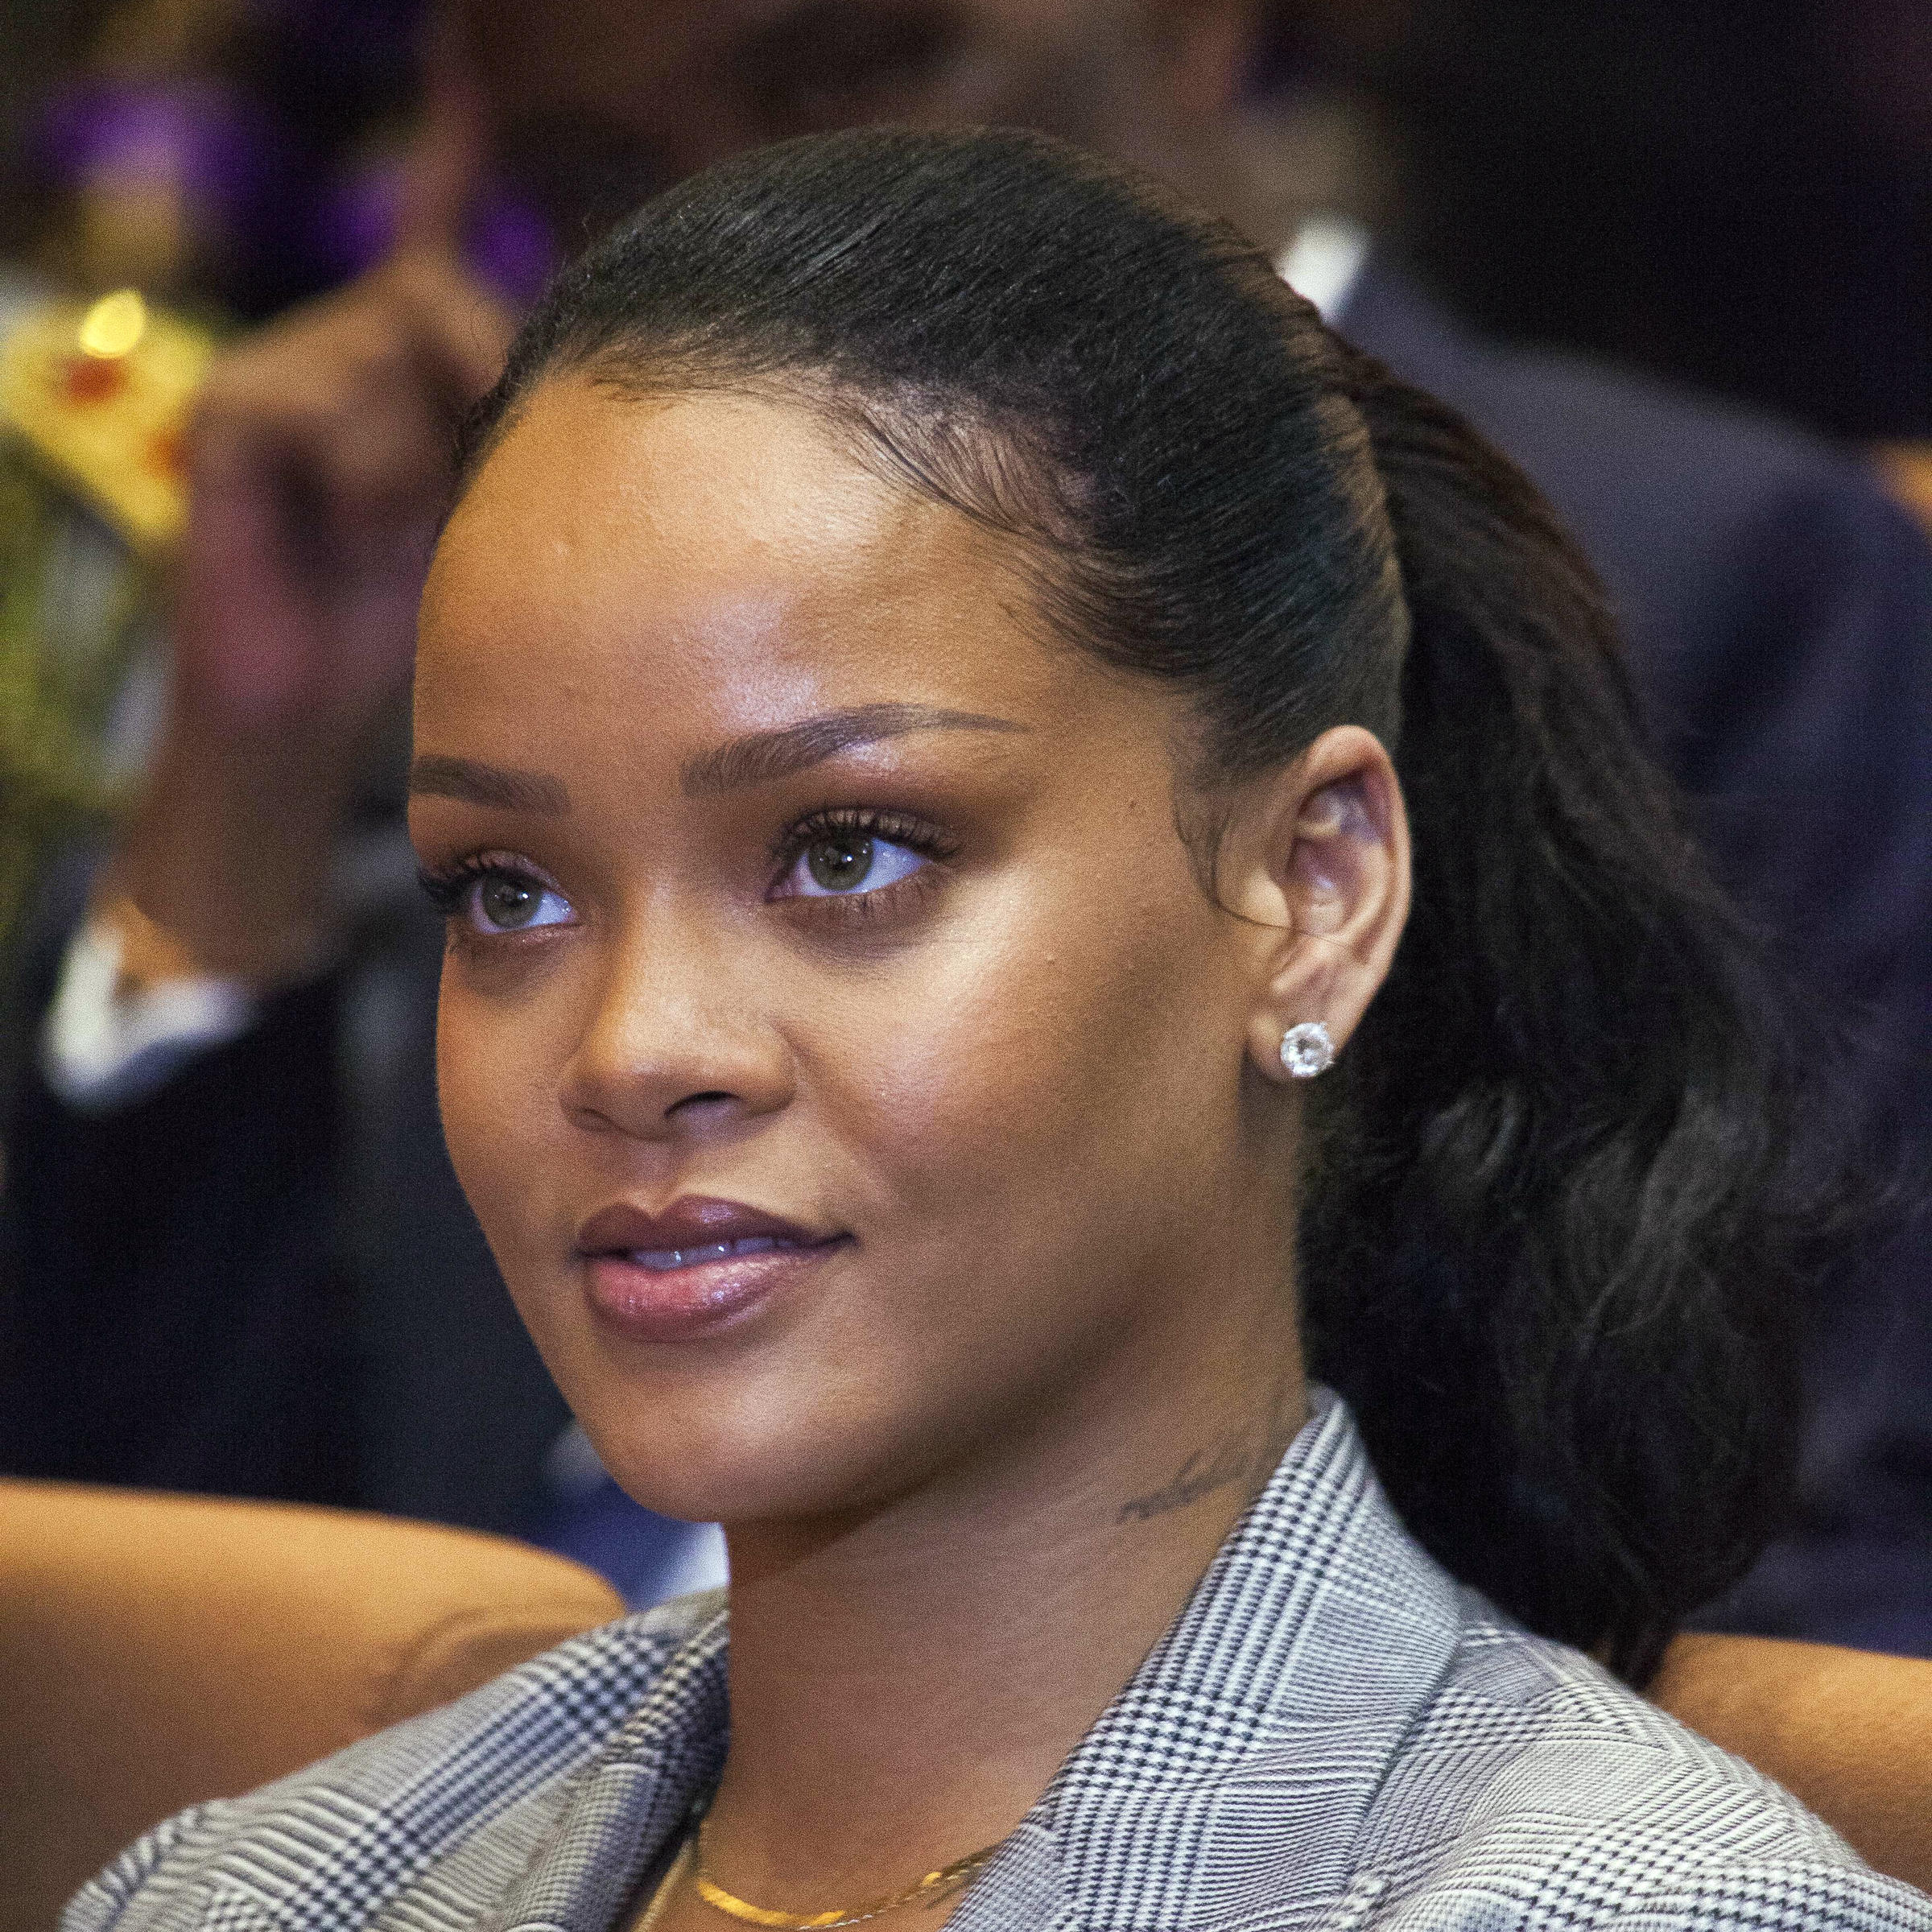 Rihanna's Reaction To Snapchat's Offensive Ad Cost The Company $800 Million